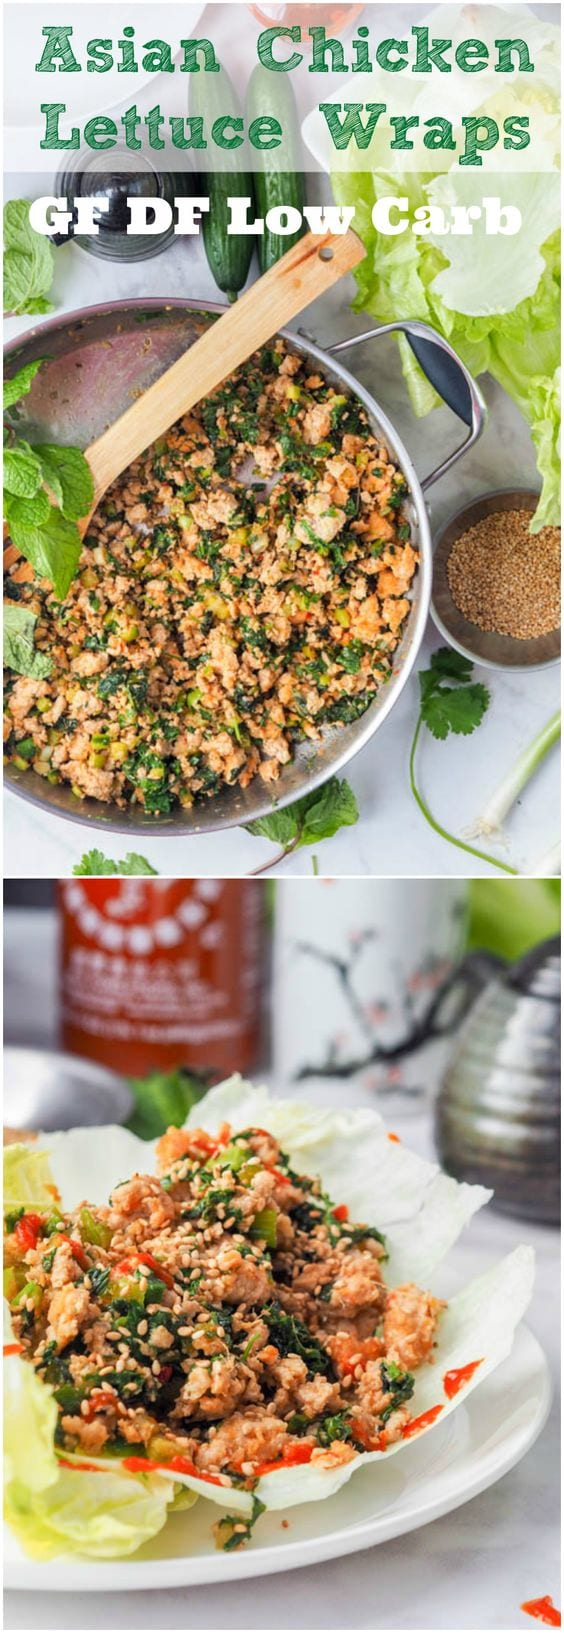 Have dinner on the table in 30 mins or less with these low carb high protein Asian chicken lettuce wraps which are brimming with vibrant flavors from the green onions, mint, cilantro and cucumbers. Bound to be your new favorite weeknight meal. Gluten-Free & Dairy Free #chicken #asian #dairyfree #glutenfree